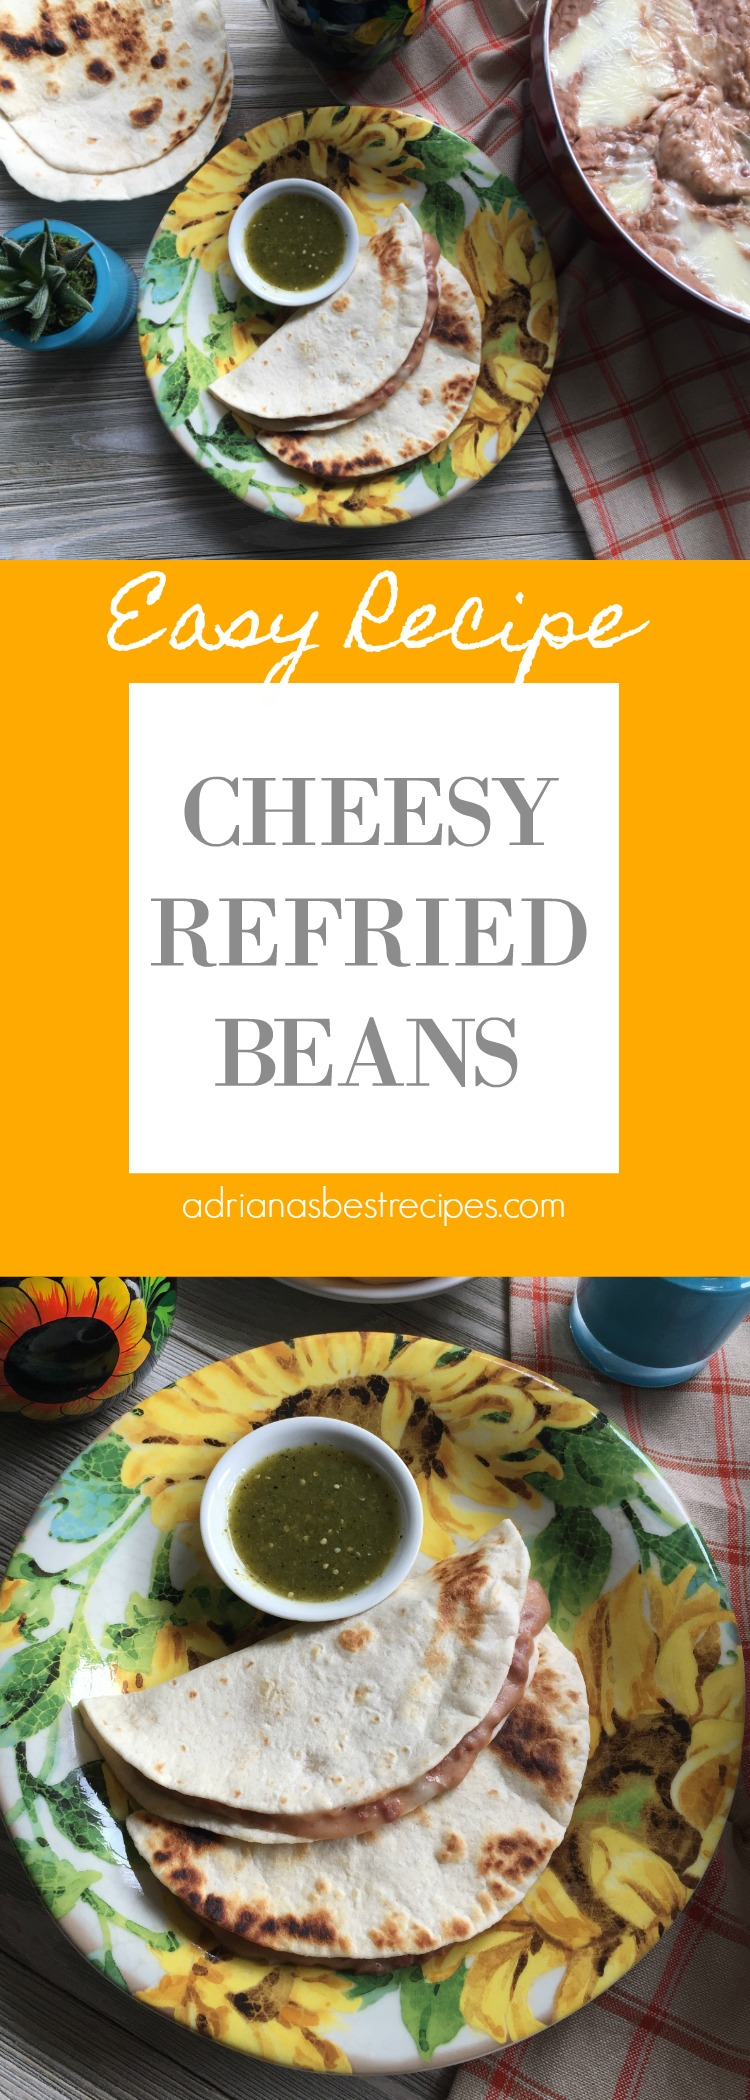 Cheesy refried beans made with Oaxaca cheese and homemade pinto beans or bayos